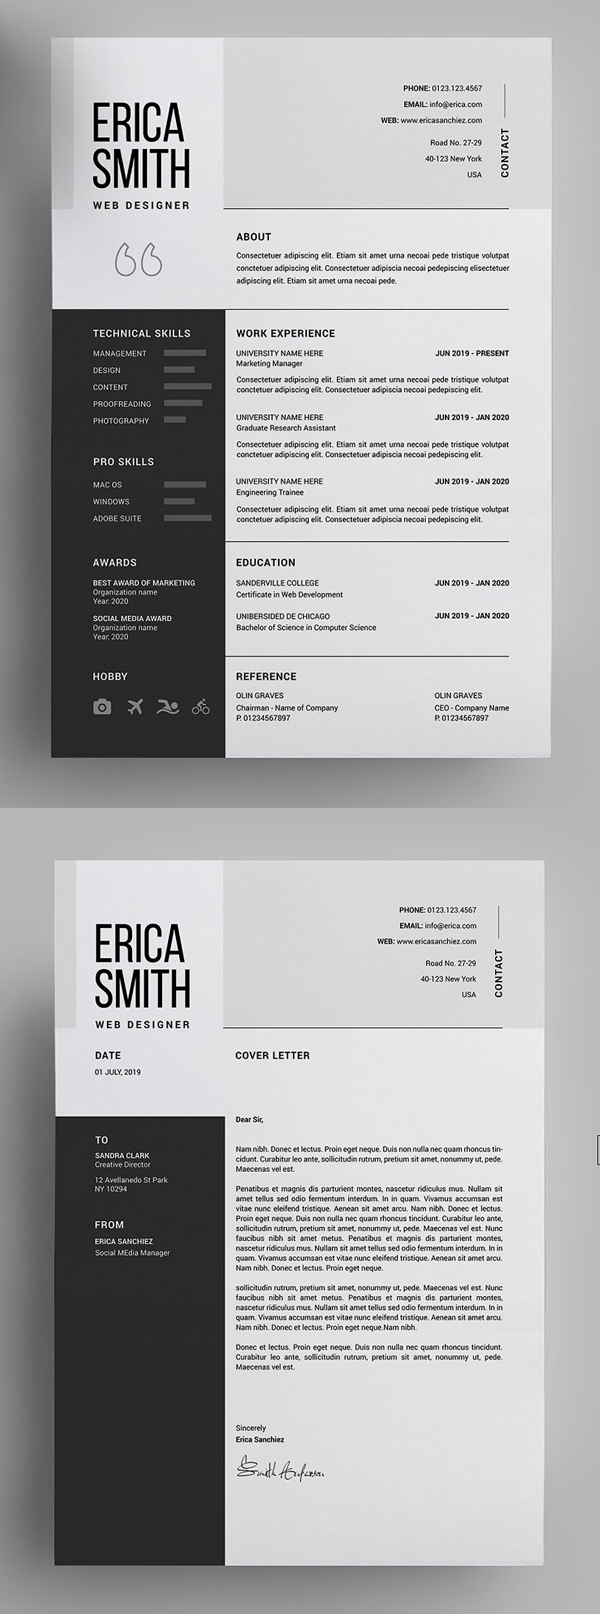 best cv resume templates with cover letter design graphic junctiongraphic junction Resume Professional Resume Letterhead